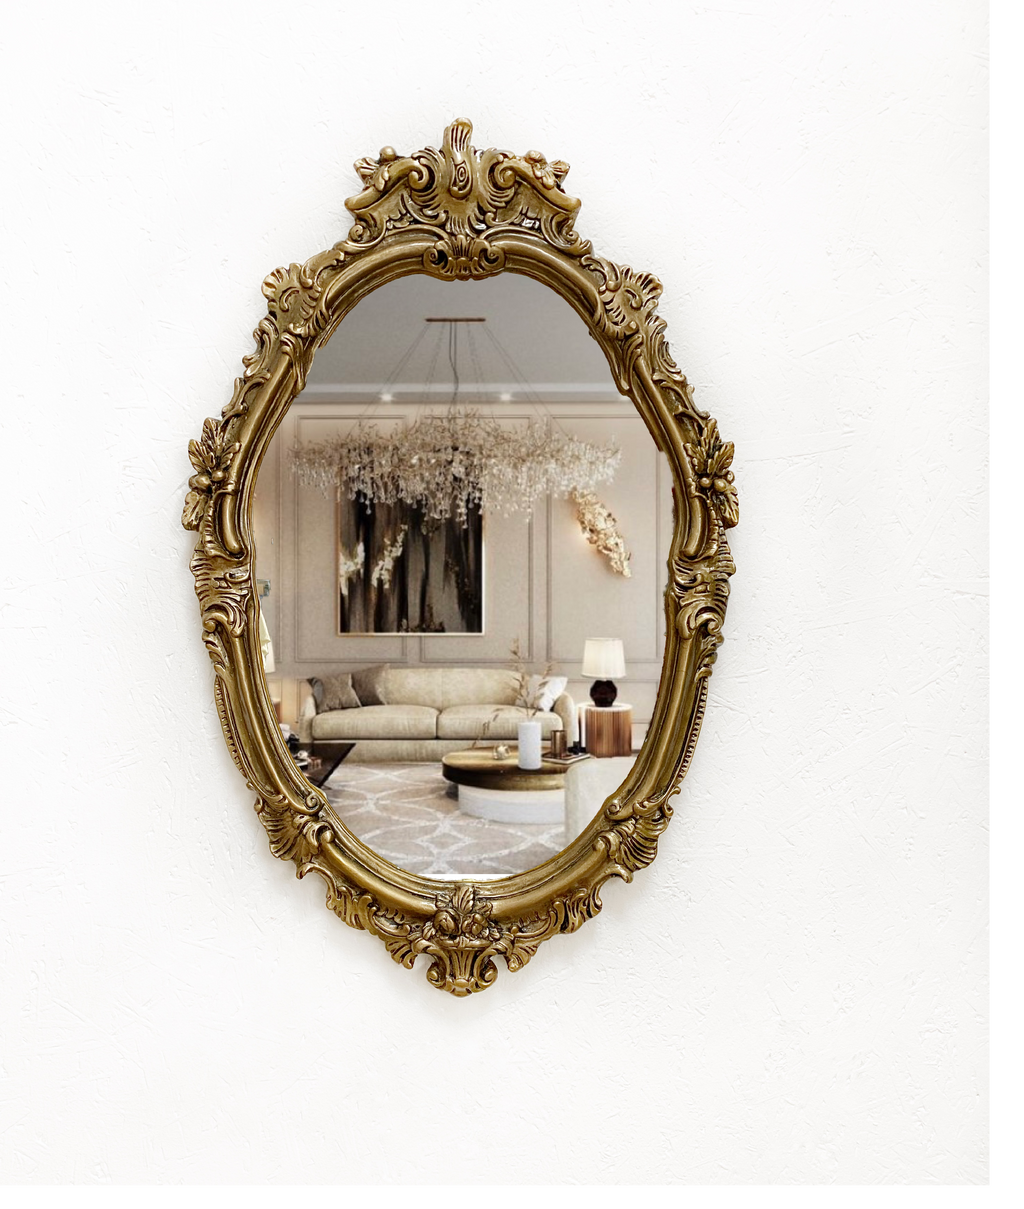 Antique french style gold ornate mirror, in antique gold with a black glaze and sealed with high shine varnish. Height 73 cm width 47 cm depth 4 cm.